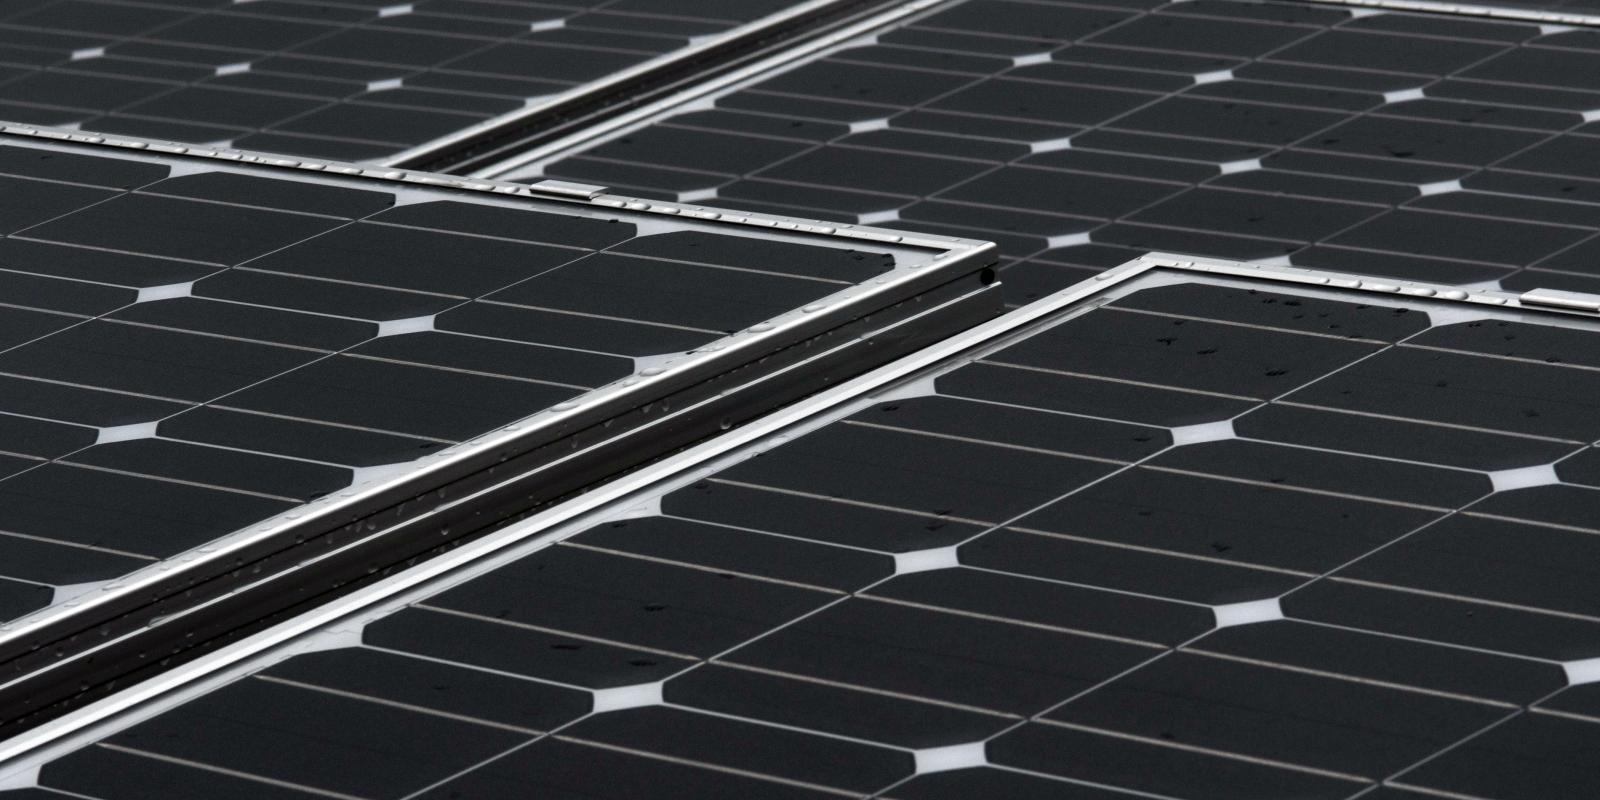 Photograph: An array of crystalline silicon photovoltaic panels under-test at the Sheffield Solar Farm.